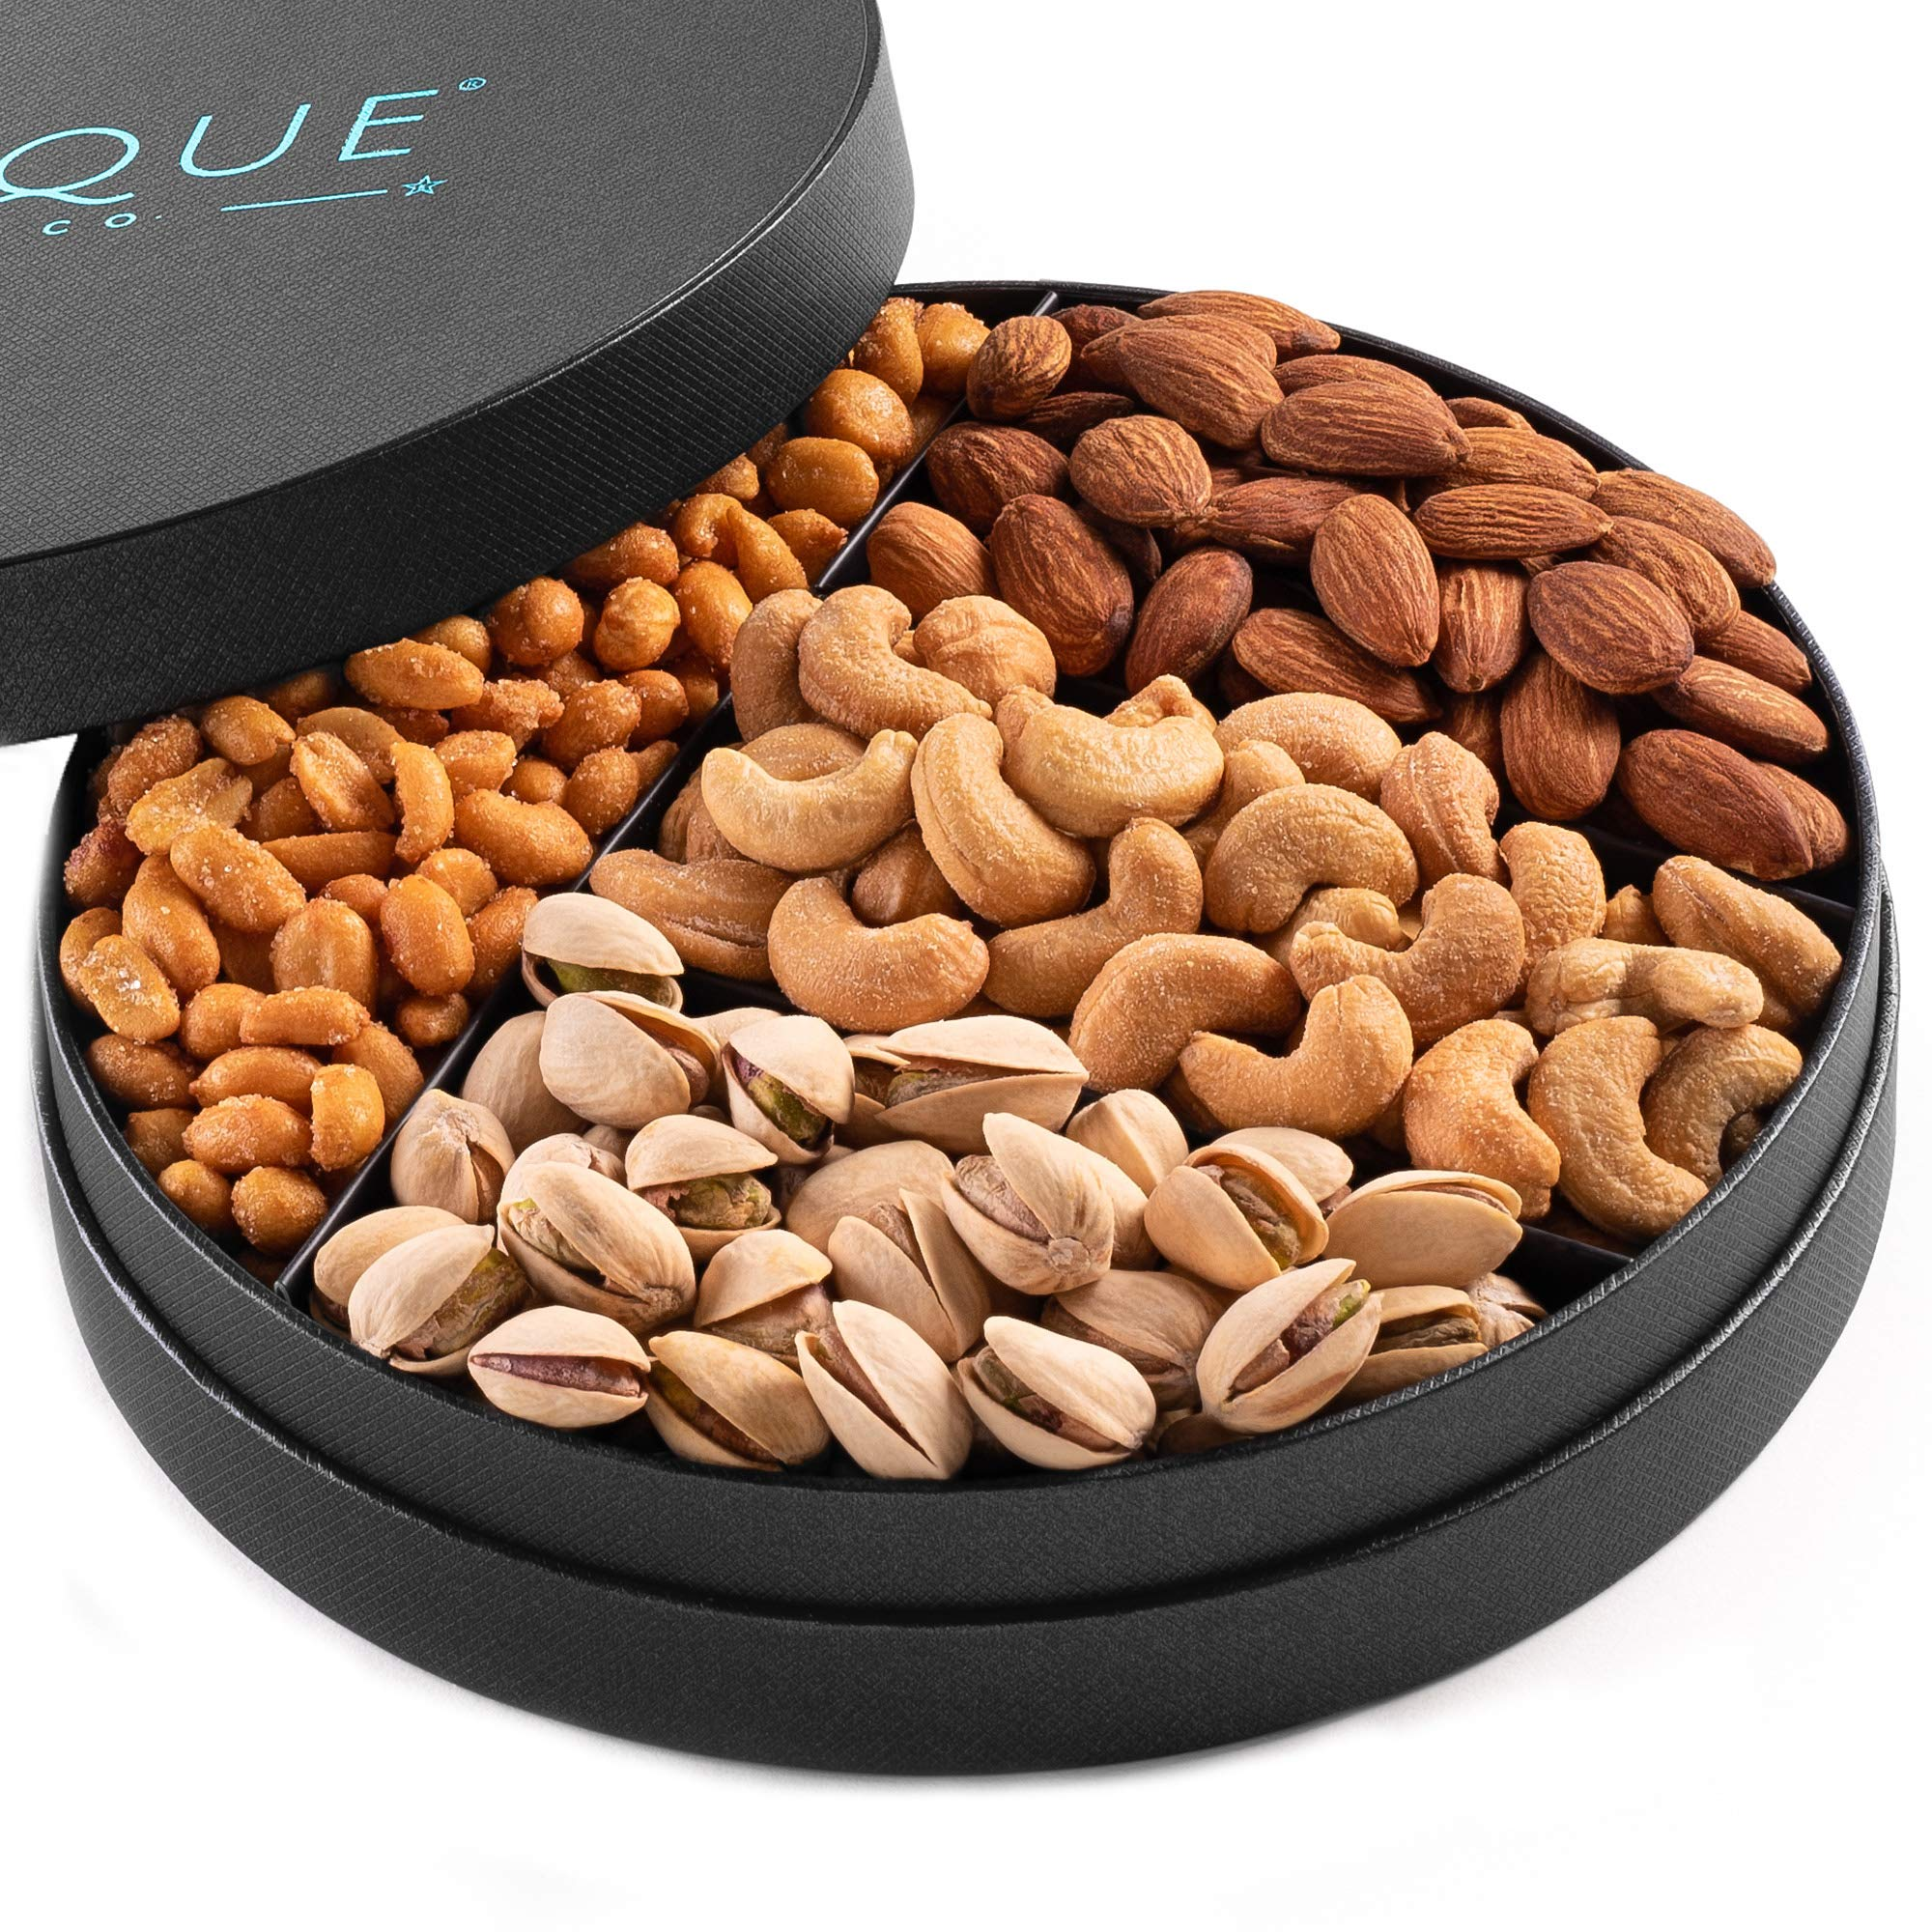 Gourmet Nut Gift Tray - 8'', Freshly Roasted Assorted Nuts for Mothers Day, Fathers Day,Holiday and Corporate Gifting